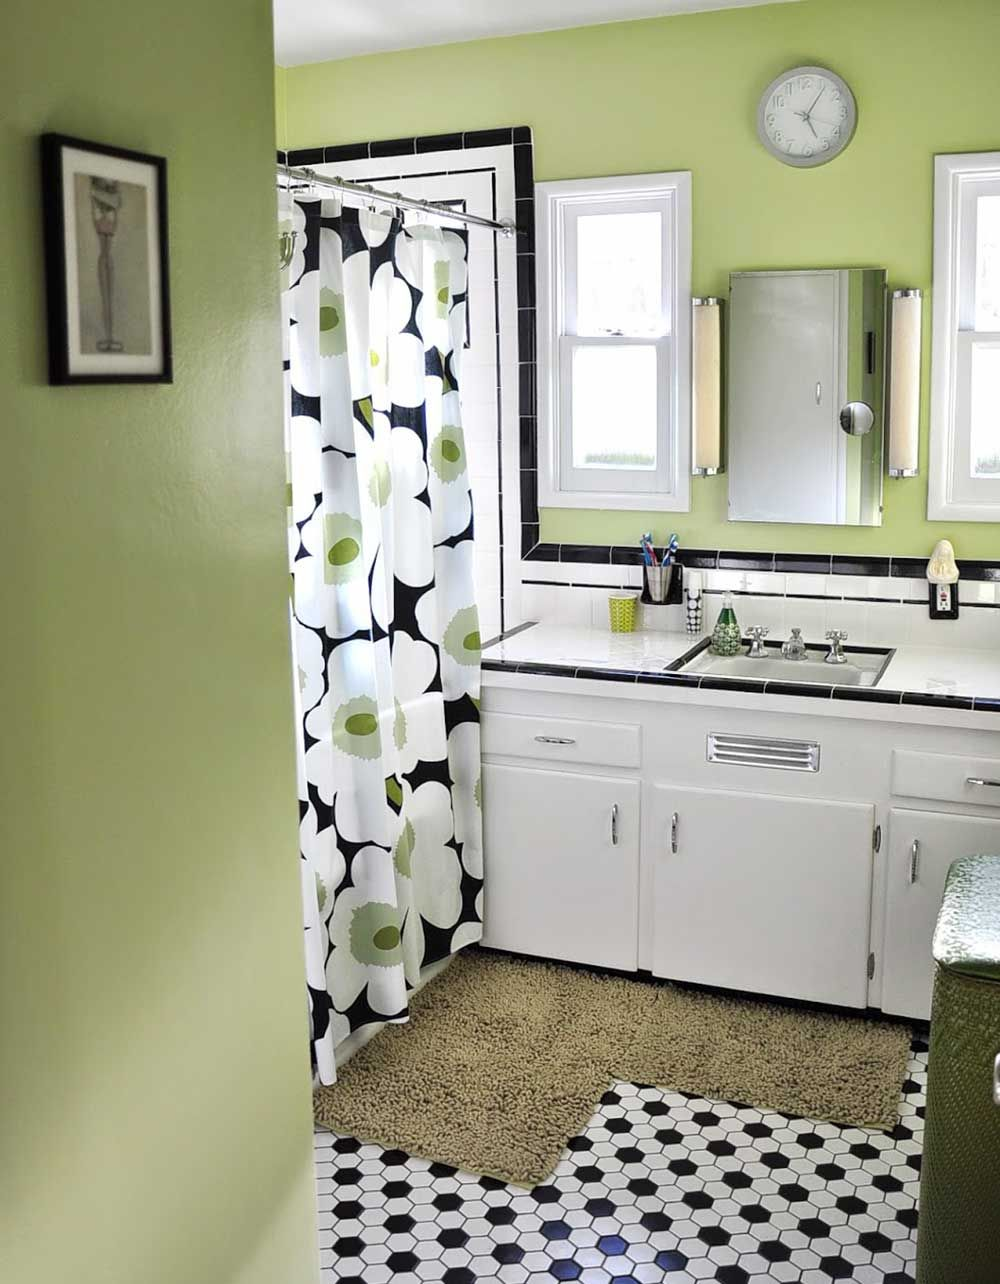 Black and white tile bathrooms - done 6 different ways in 2018 | New ...